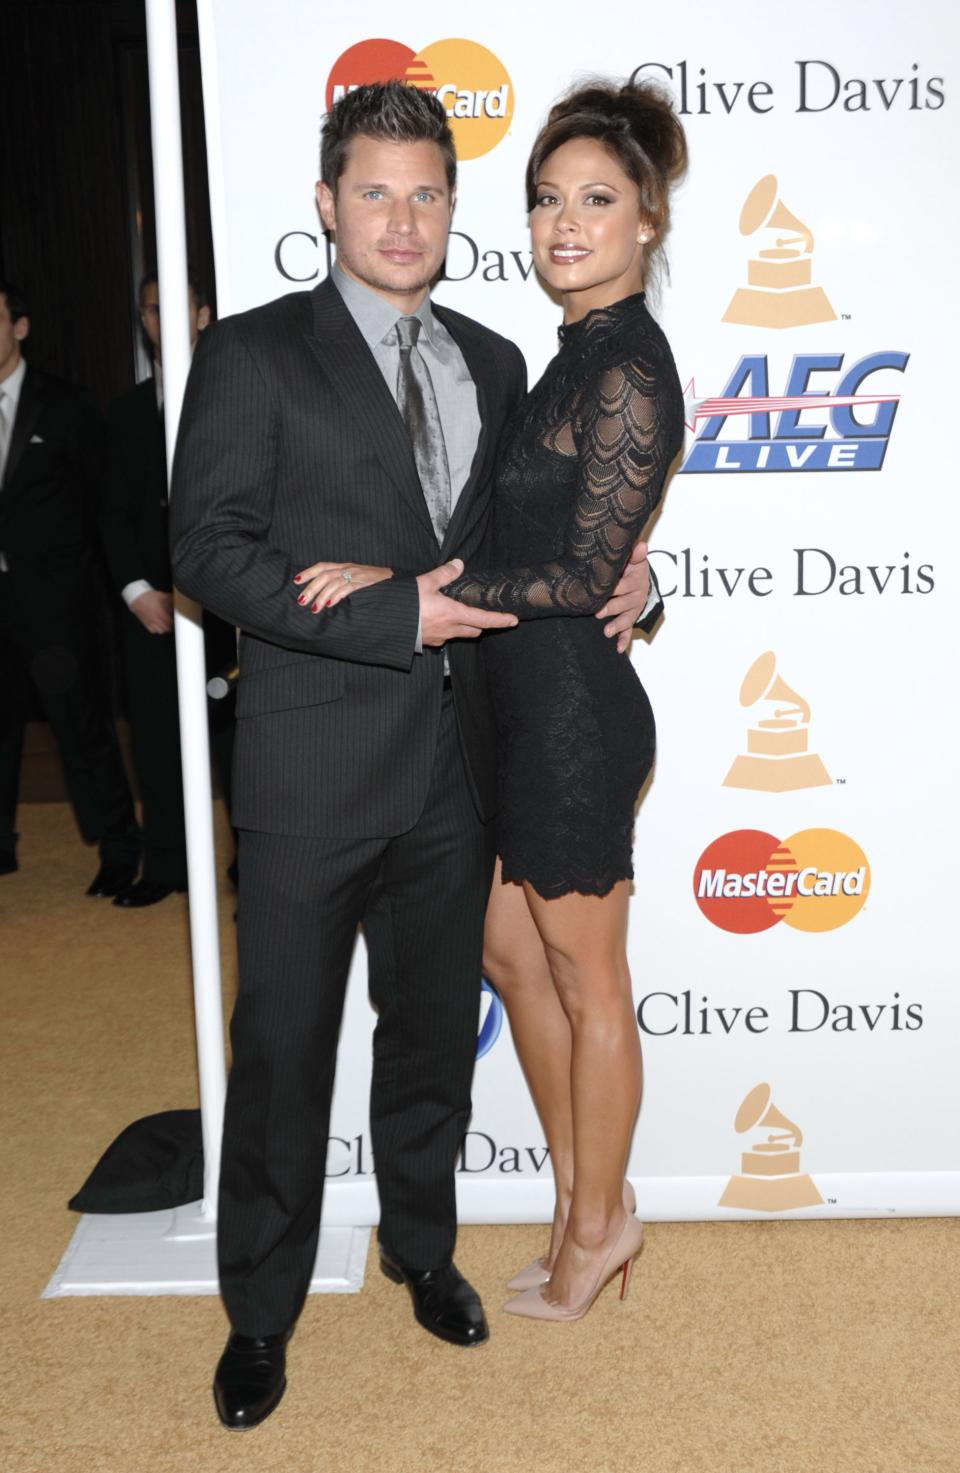 FILE - This Feb. 12, 2011 file photo shows Nick Lachey, left, and Vanessa Lachey arriving at the Pre-Grammy Gala & Salute to Industry Icons with Clive Davis honoring David Geffen in Beverly Hills, Calif. (AP Photo/Dan Steinberg, file)